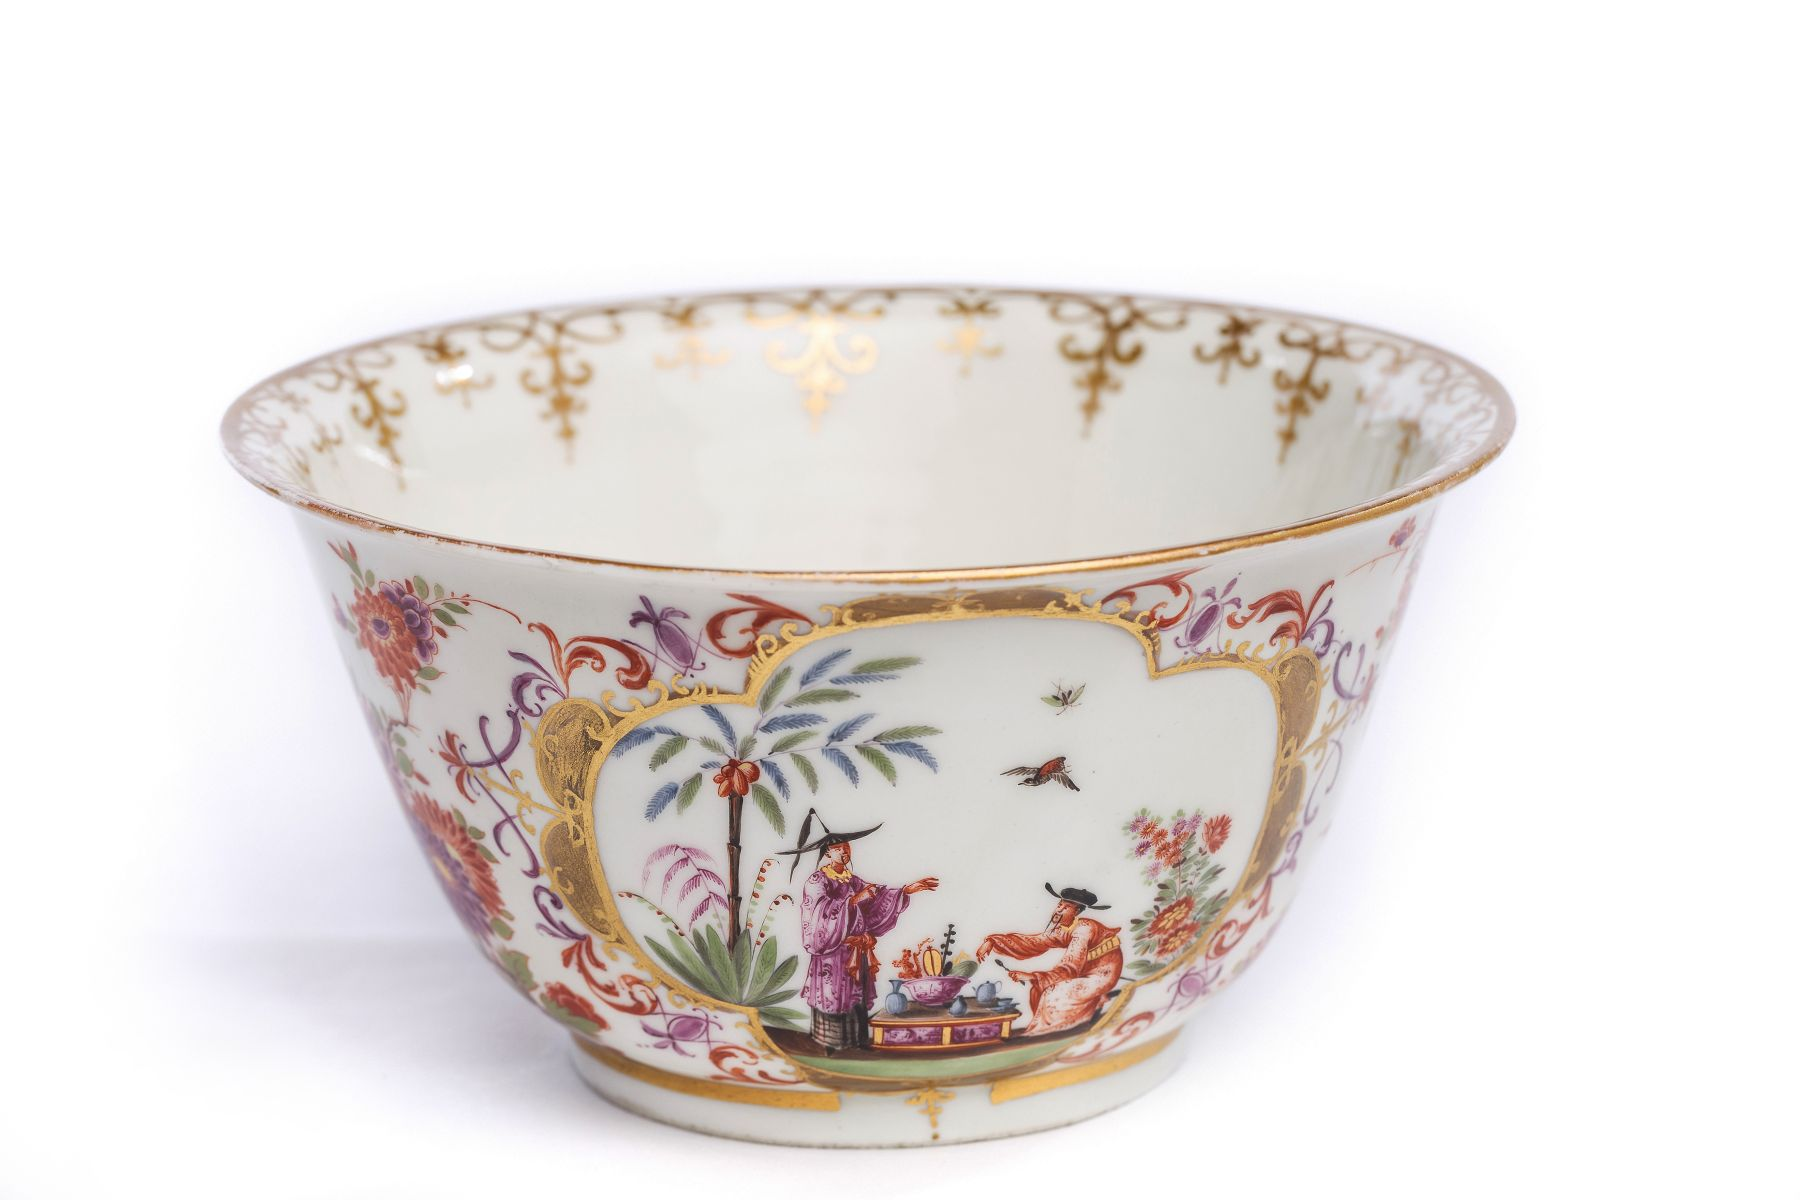 """#2 Rare bowl with """"Chinoiserie"""" scenes, Meissen 1720/30 